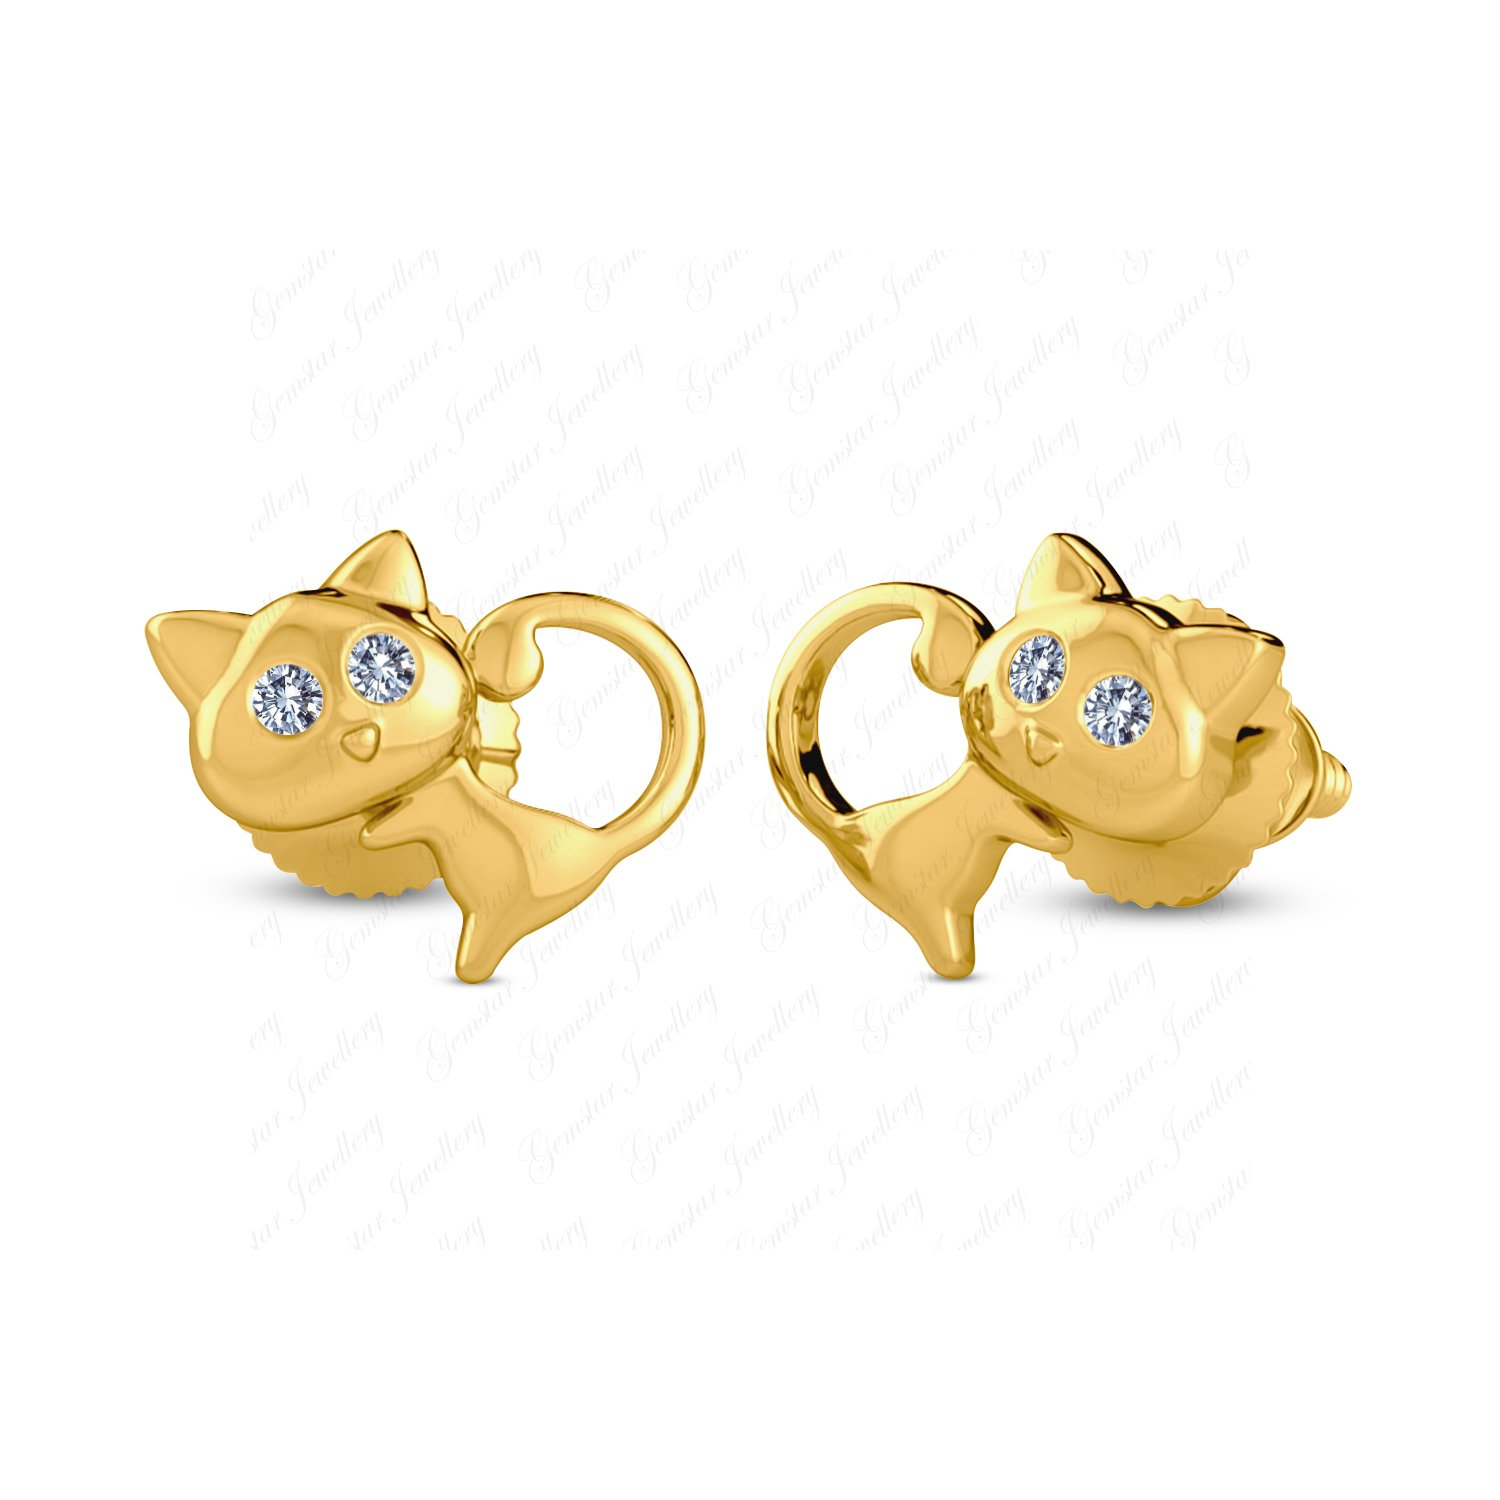 Gemstar Jewellery Lovely Cat Earrings With Round White Sim Diamond 925 Silver 14k Yellow Gold Finish